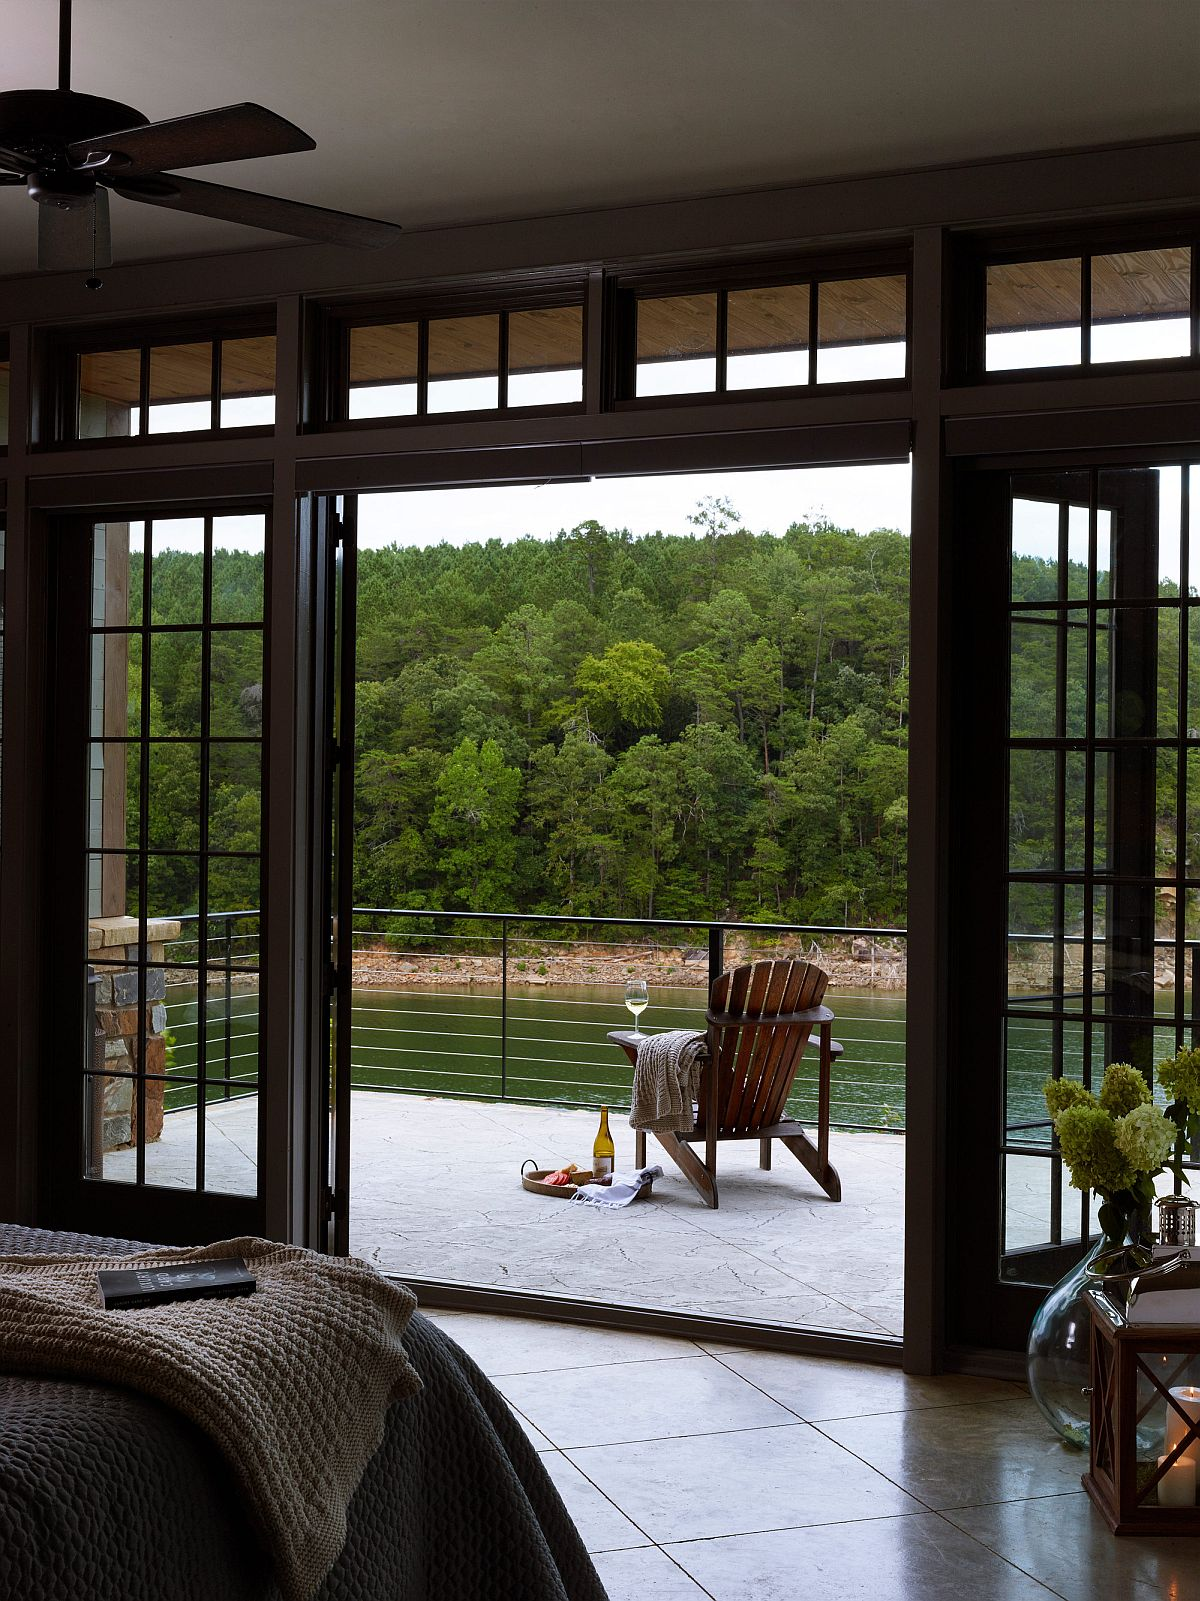 Romantic balcony with a view of the lake and beautiful mountains